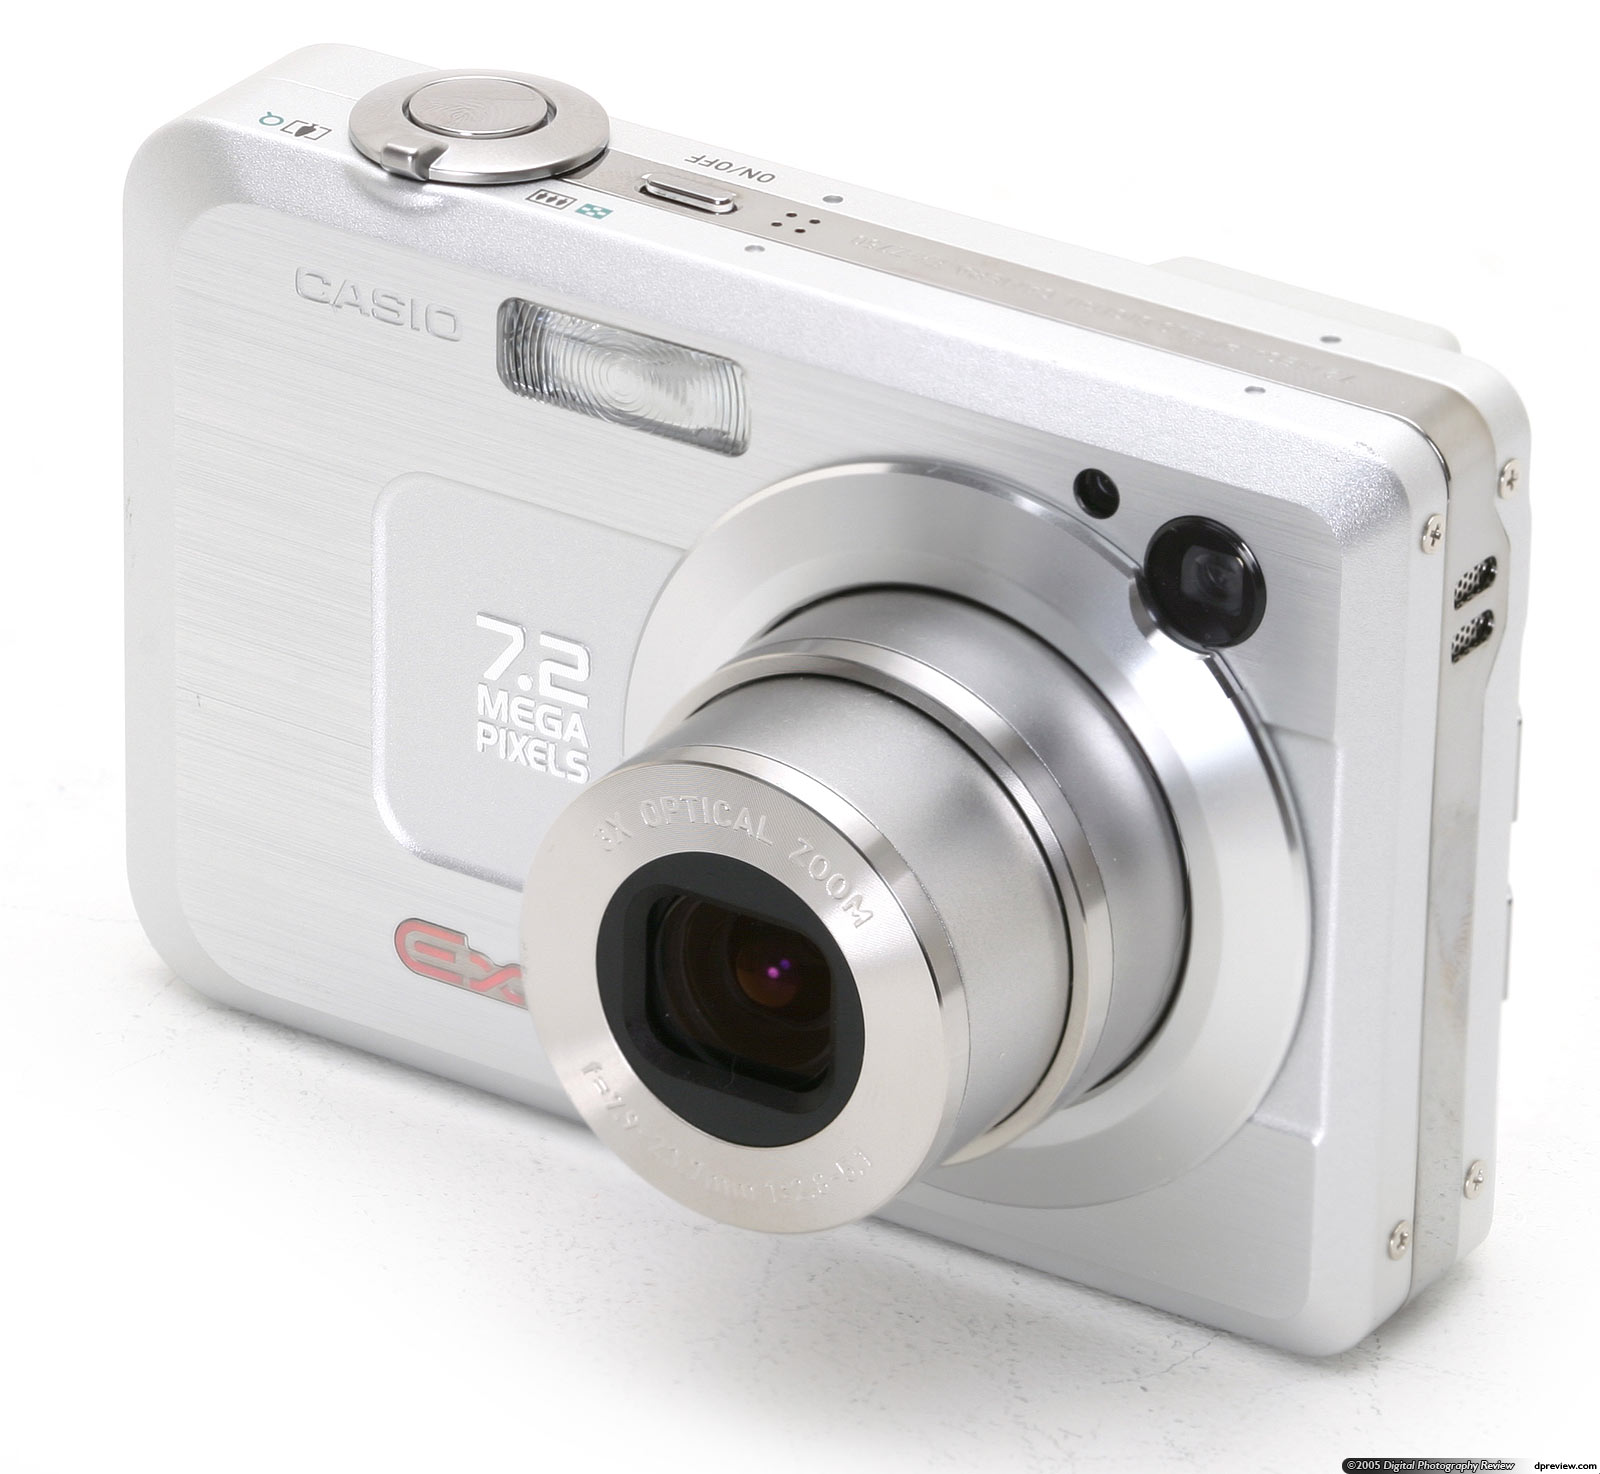 Casio Digital Camera Exilim EX-Z750 XP